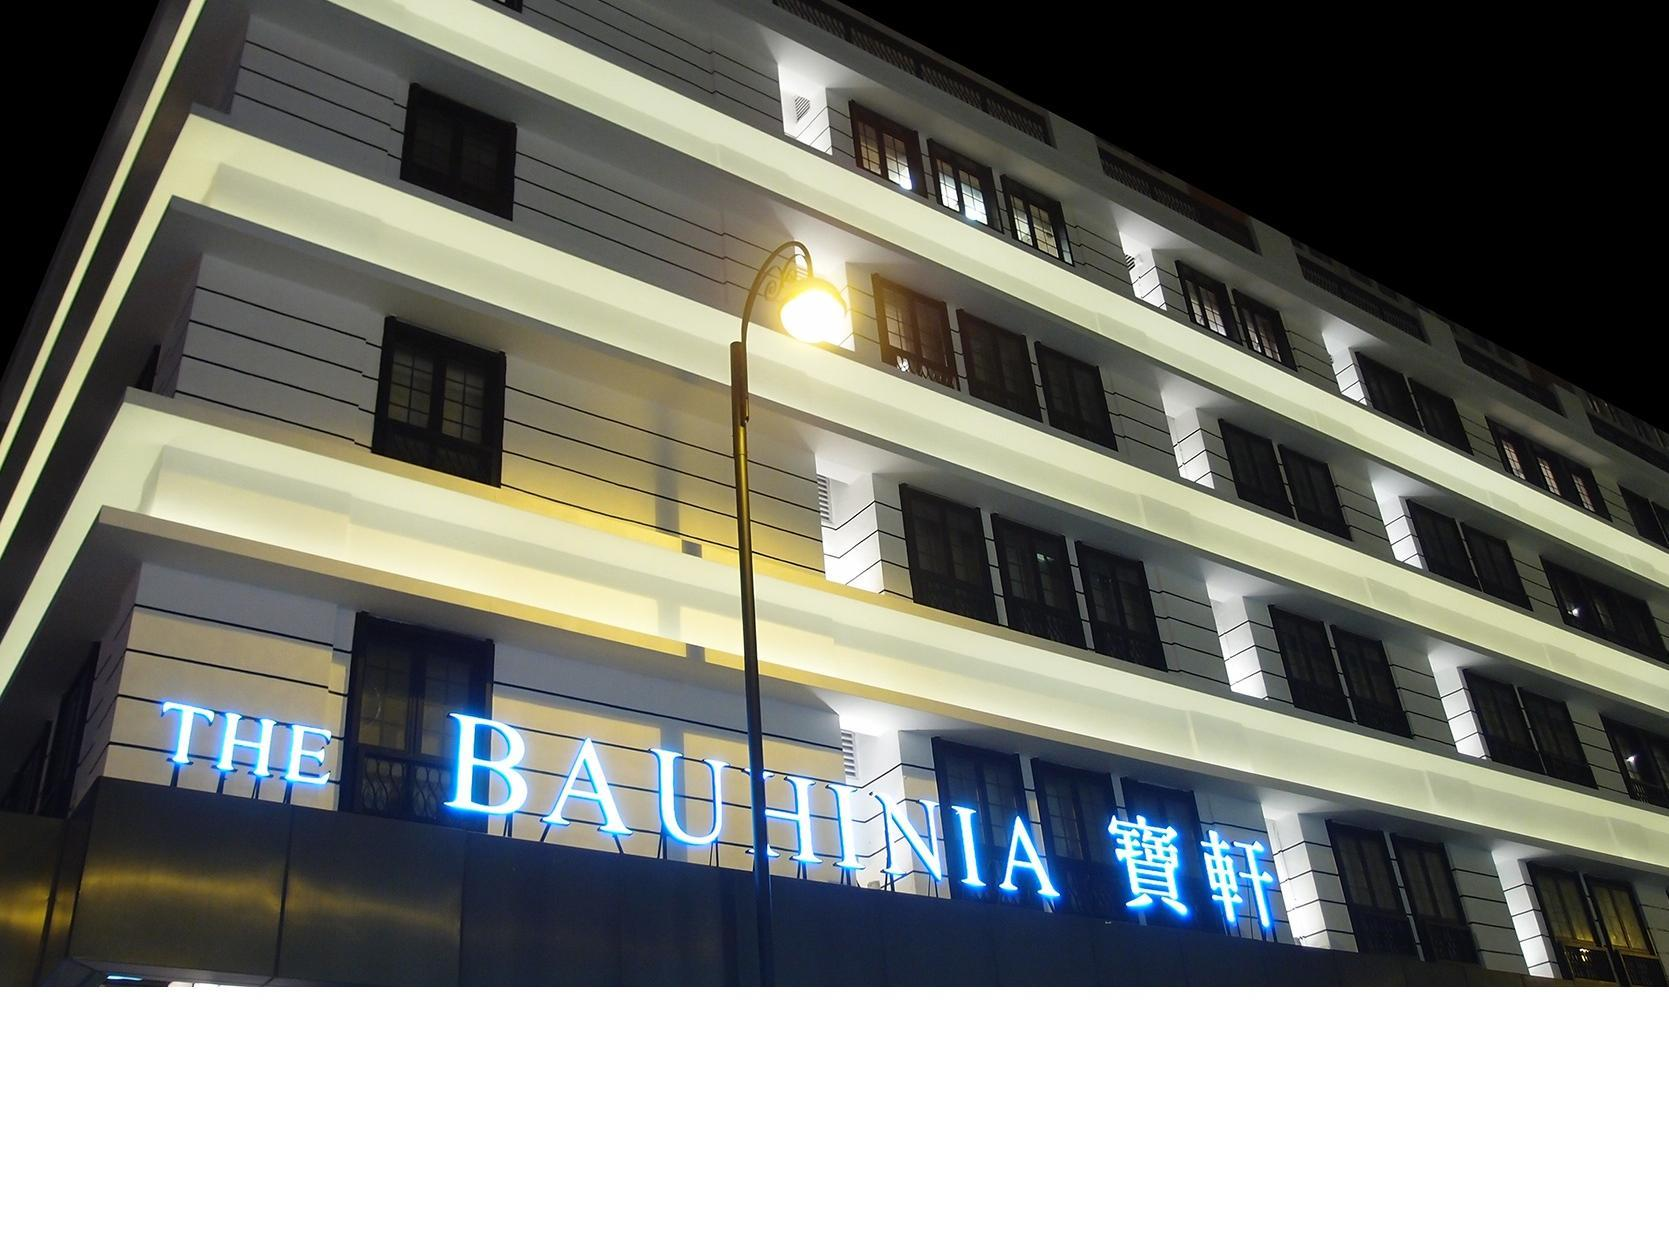 The Bauhinia Hotel - Central Hongkong